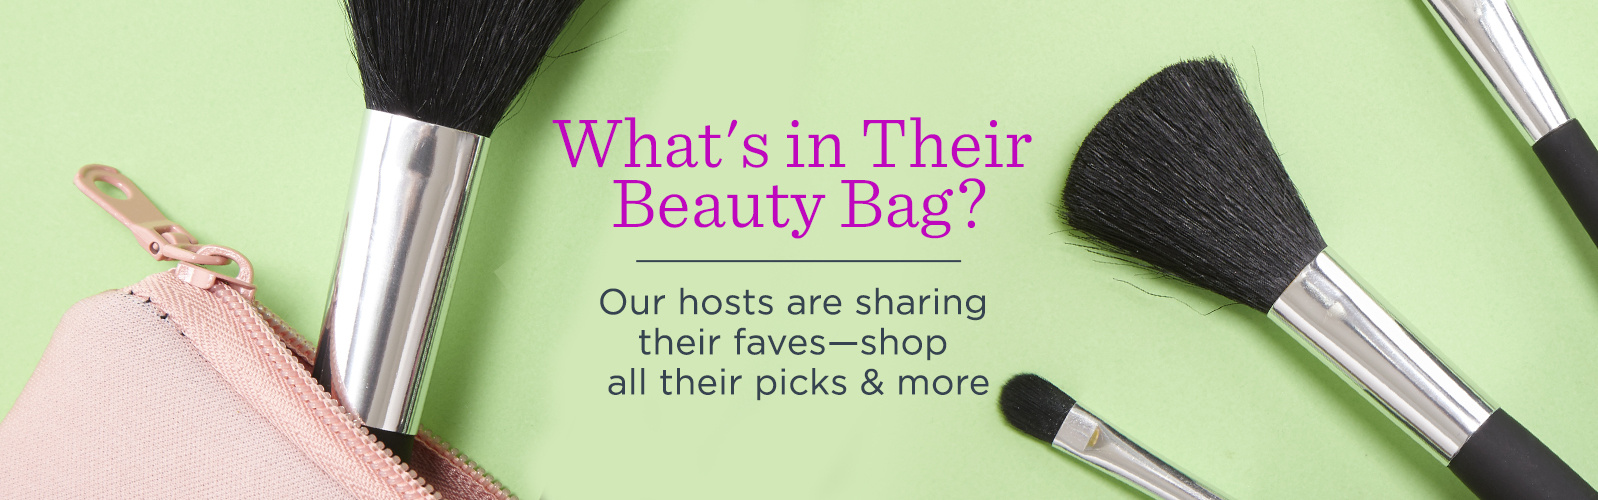 What's in Their Beauty Bag?  Our hosts are sharing their faves—shop all their picks & more